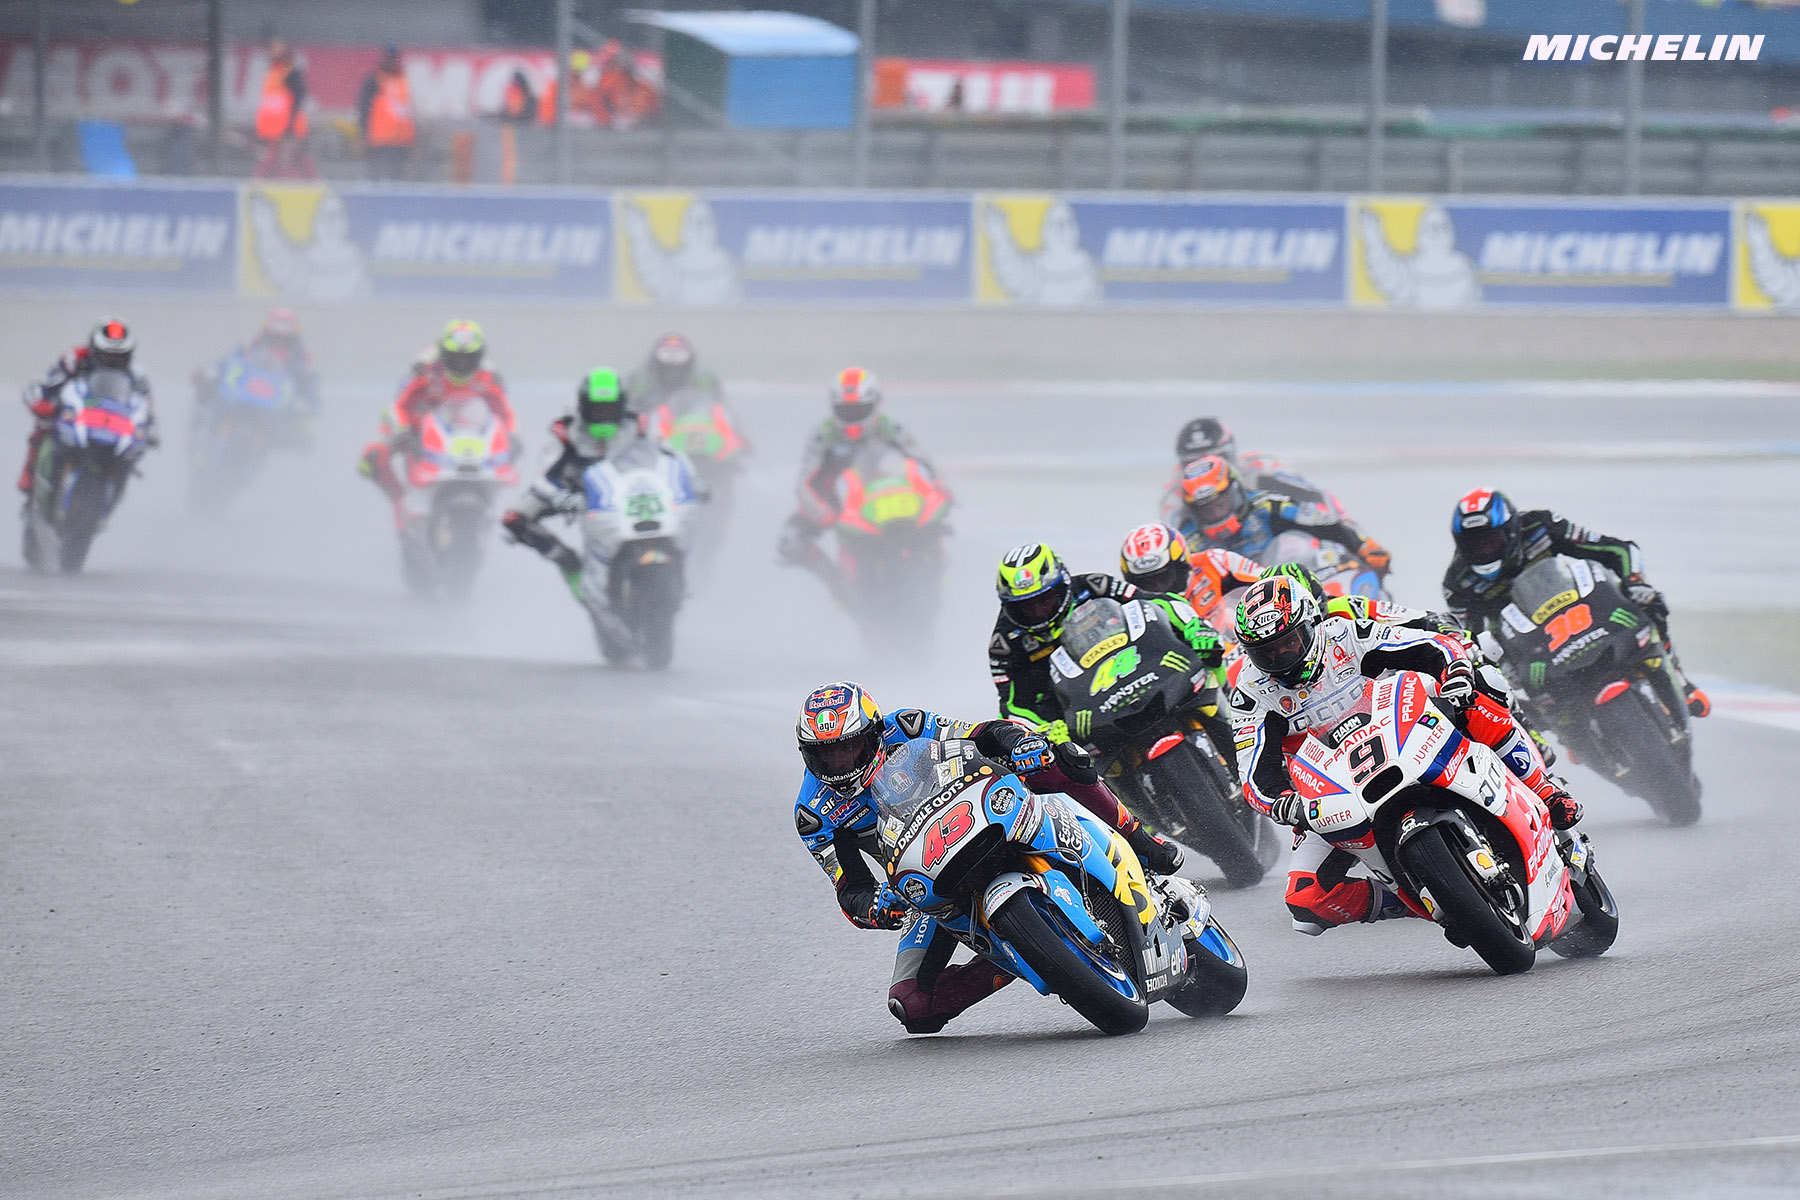 MotoGP: Assen's 'Cathedral of Speed' for the Dutch GP